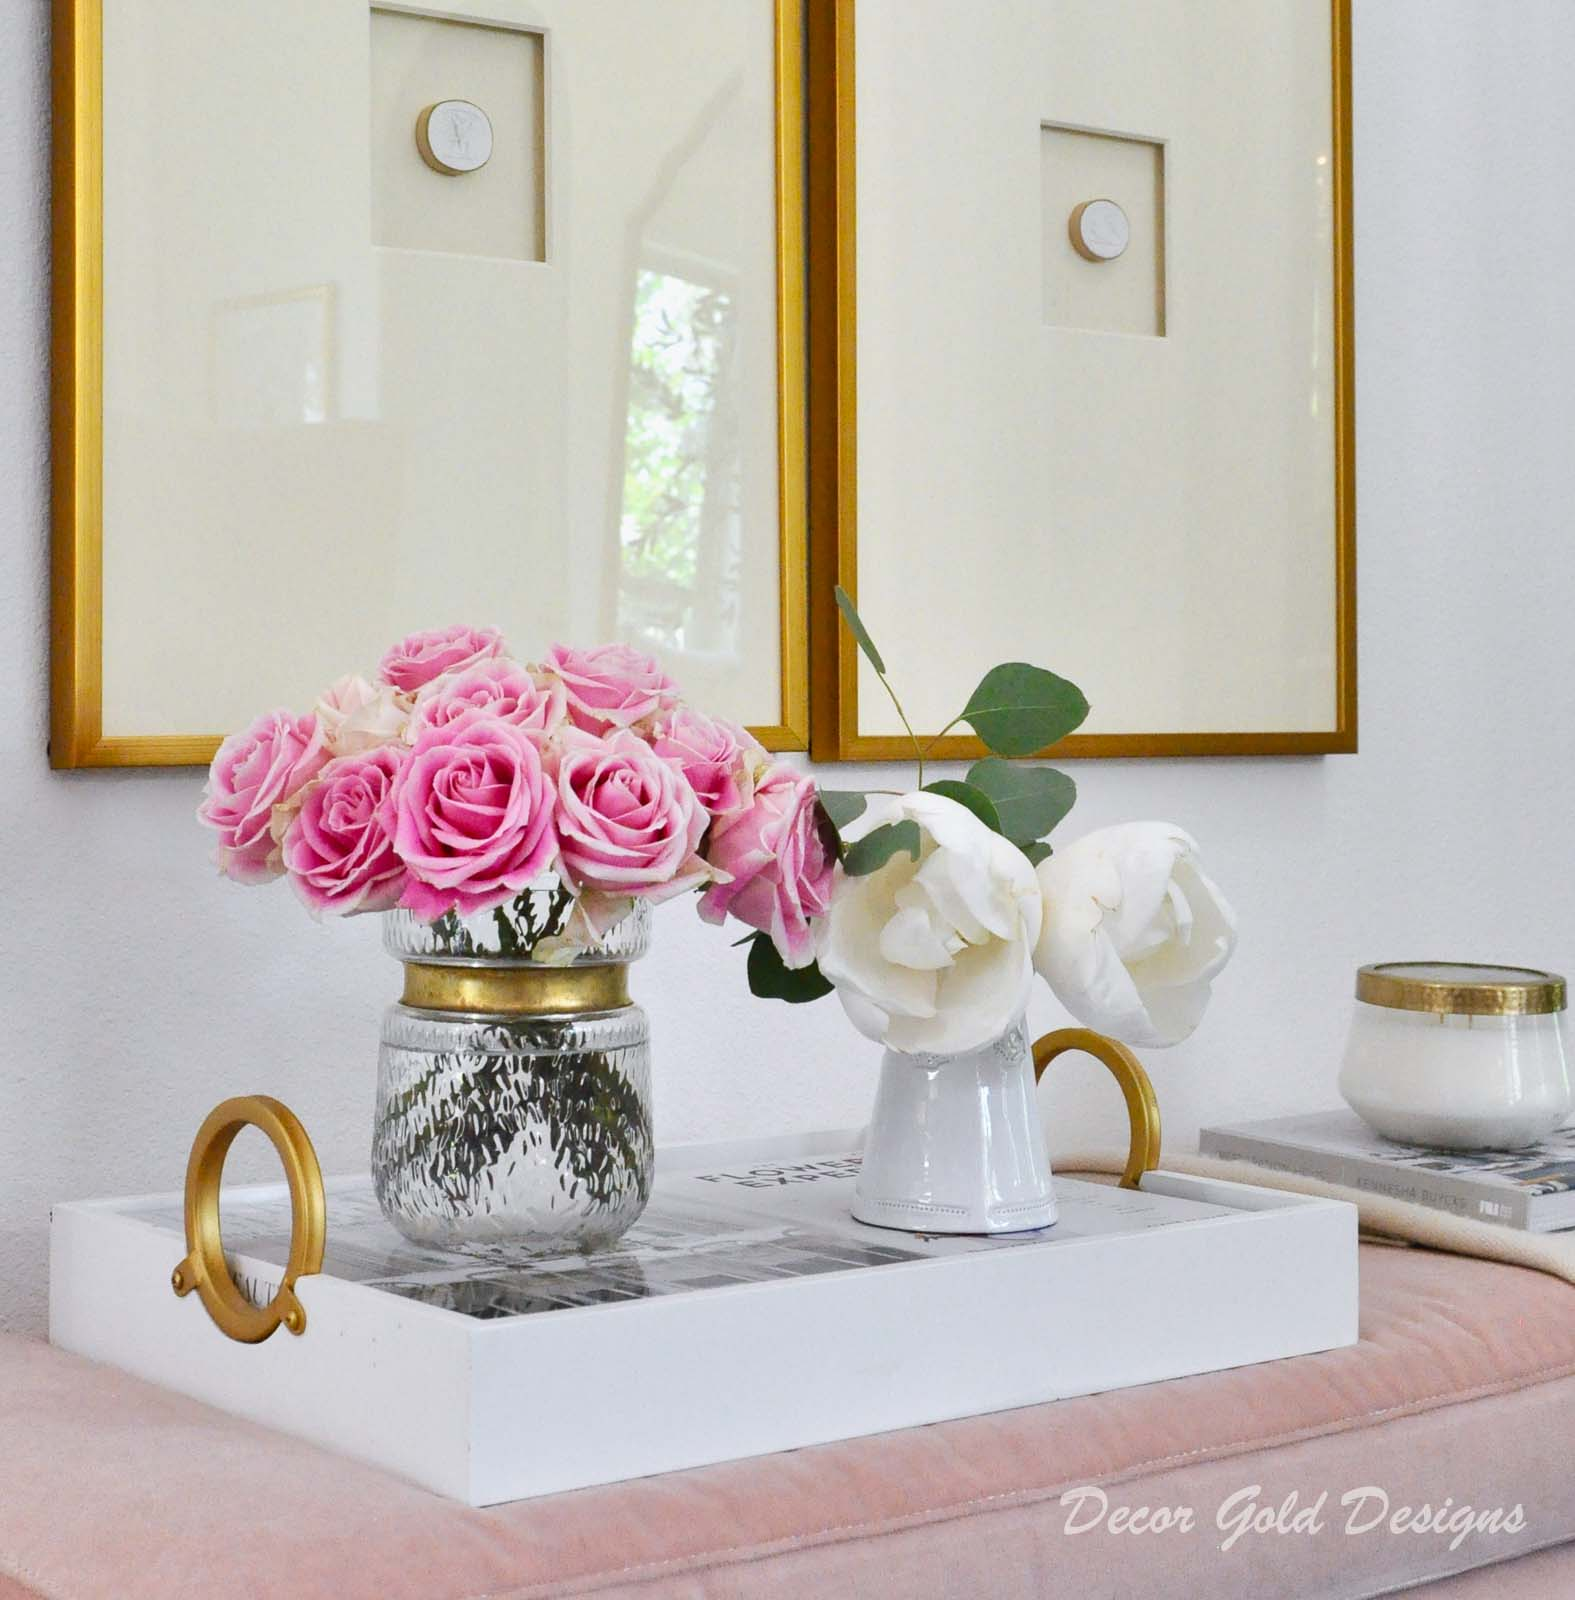 Entryway update beautiful decorative accessories